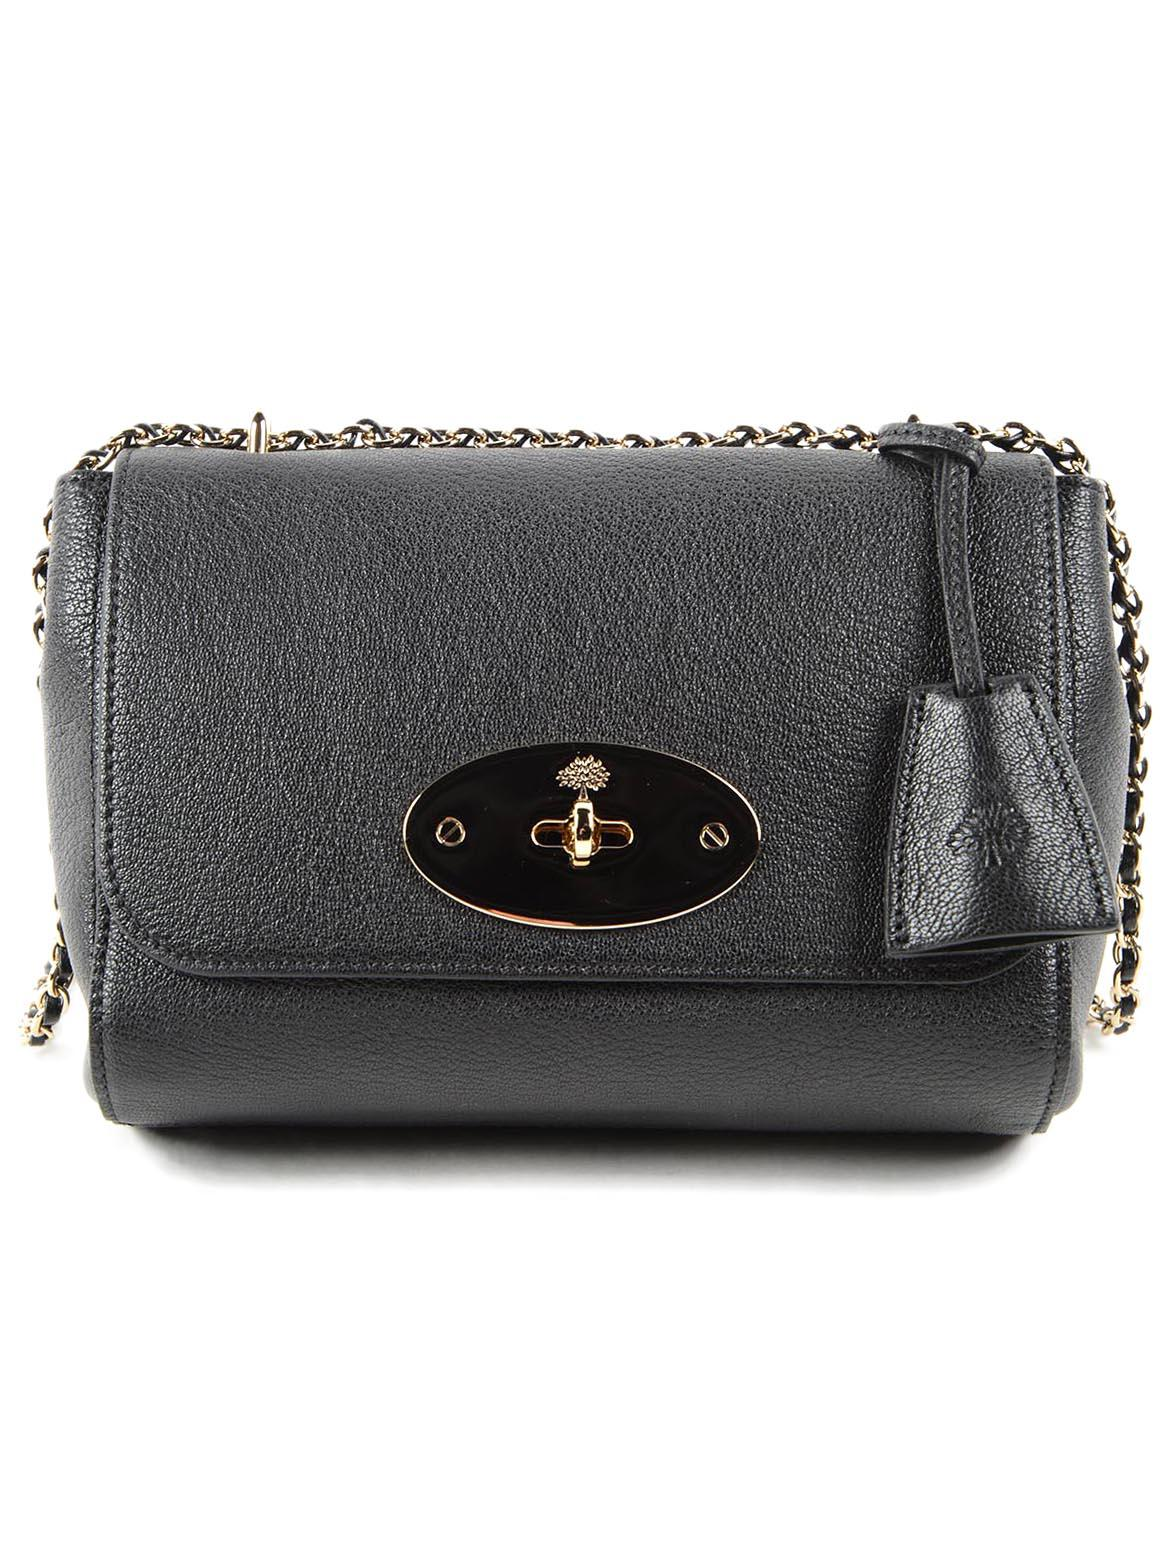 c1c30ada52aa Lyst - Mulberry Lily Bag in Black - Save 9%